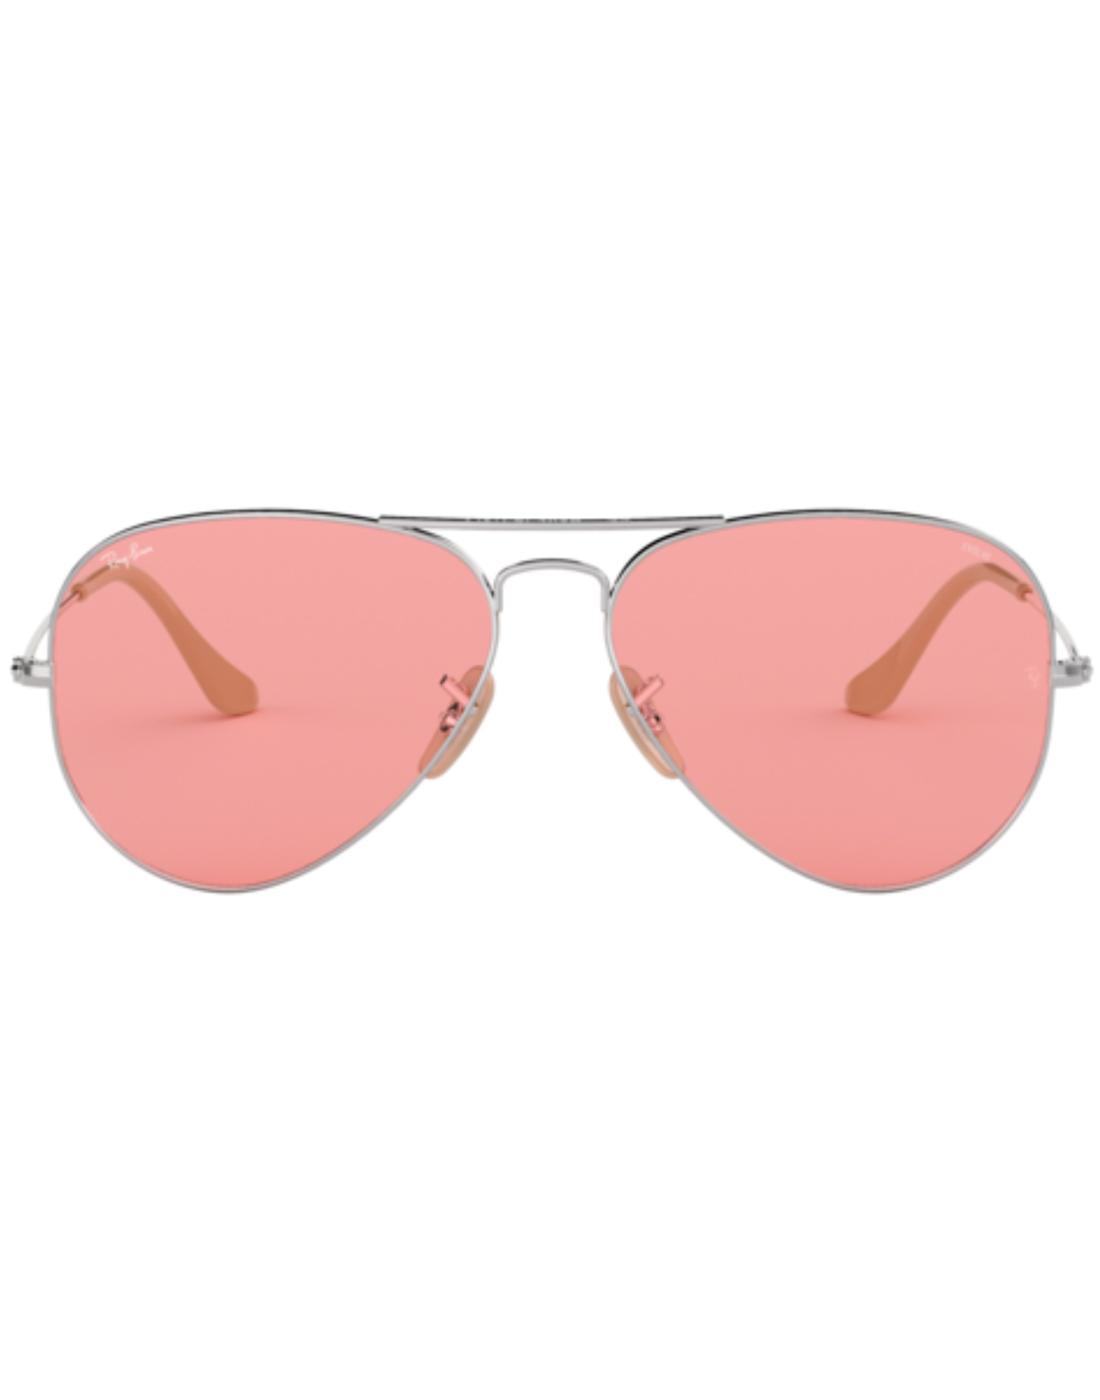 Aviator RAY-BAN Retro 70s Mod Sunglasses in Pink